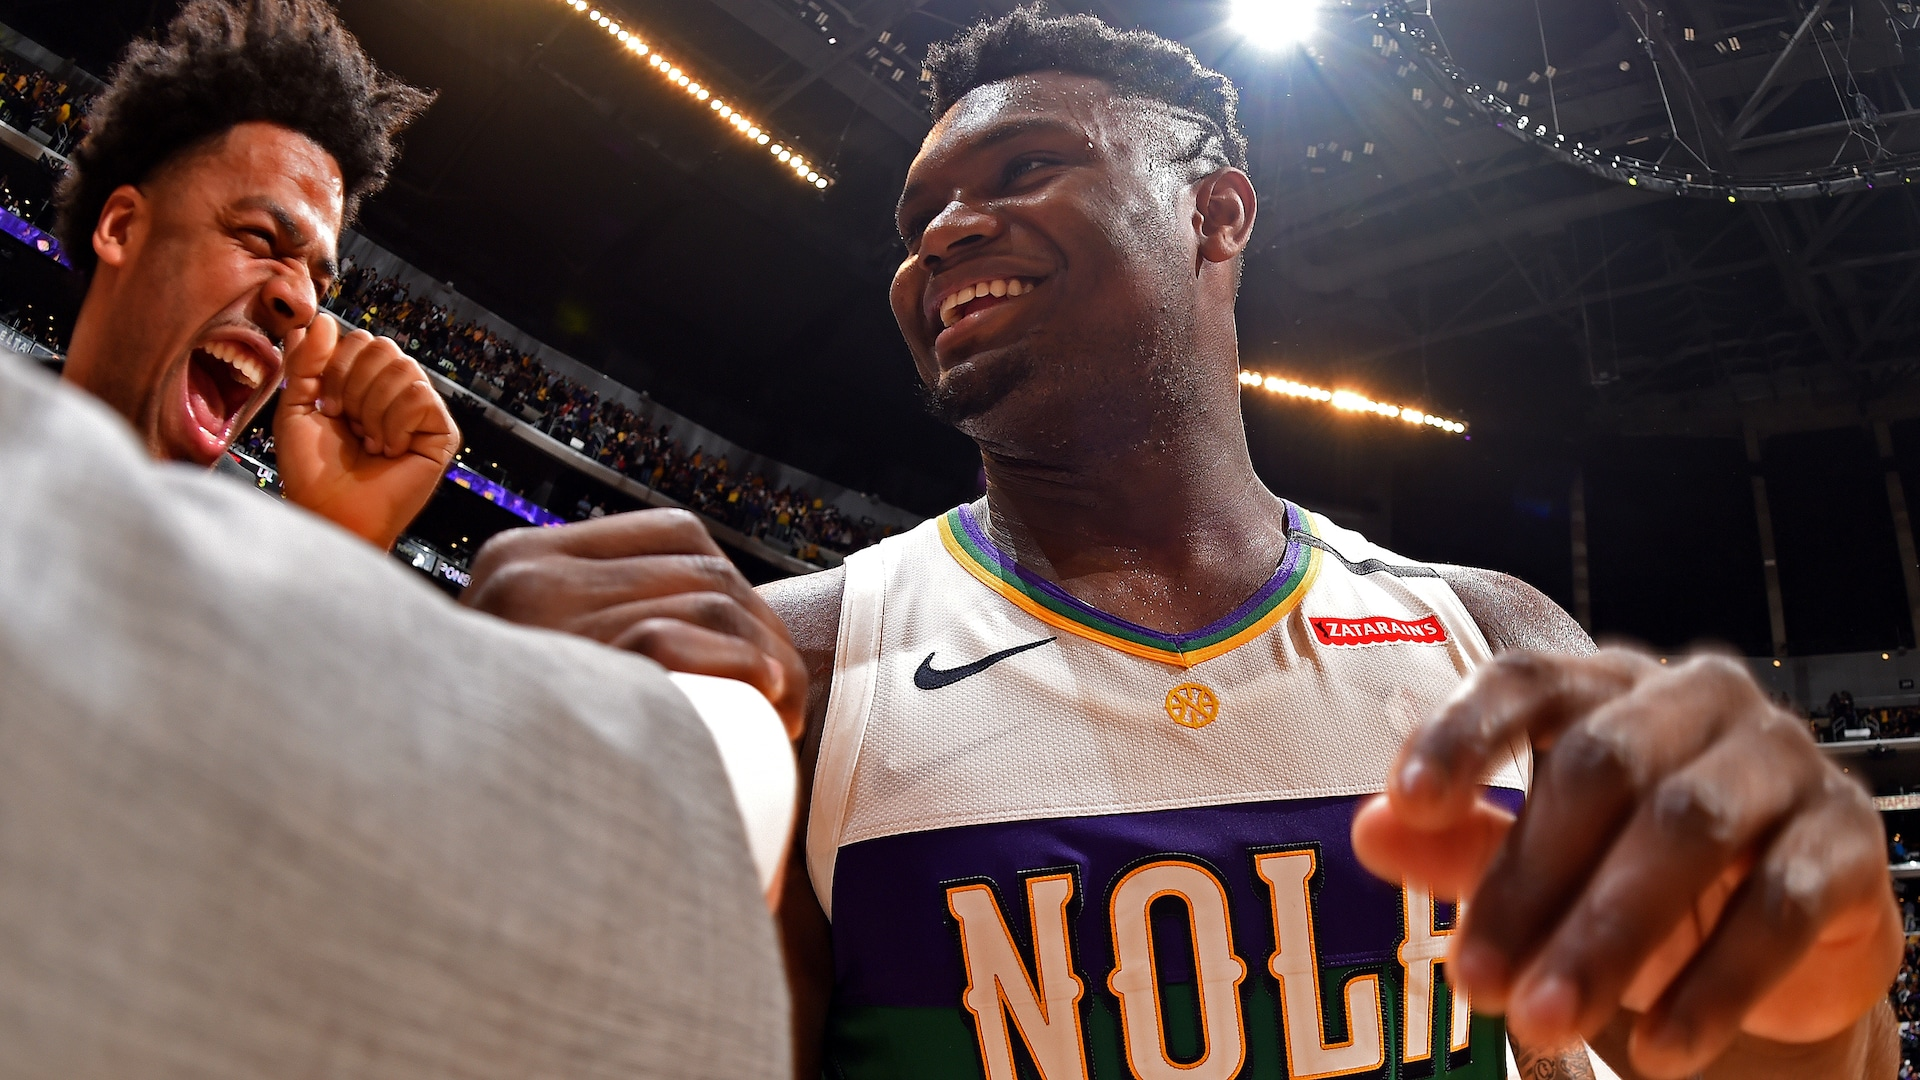 Zion Williamson has arrived and the Pelicans have surged ... How high will they rise?